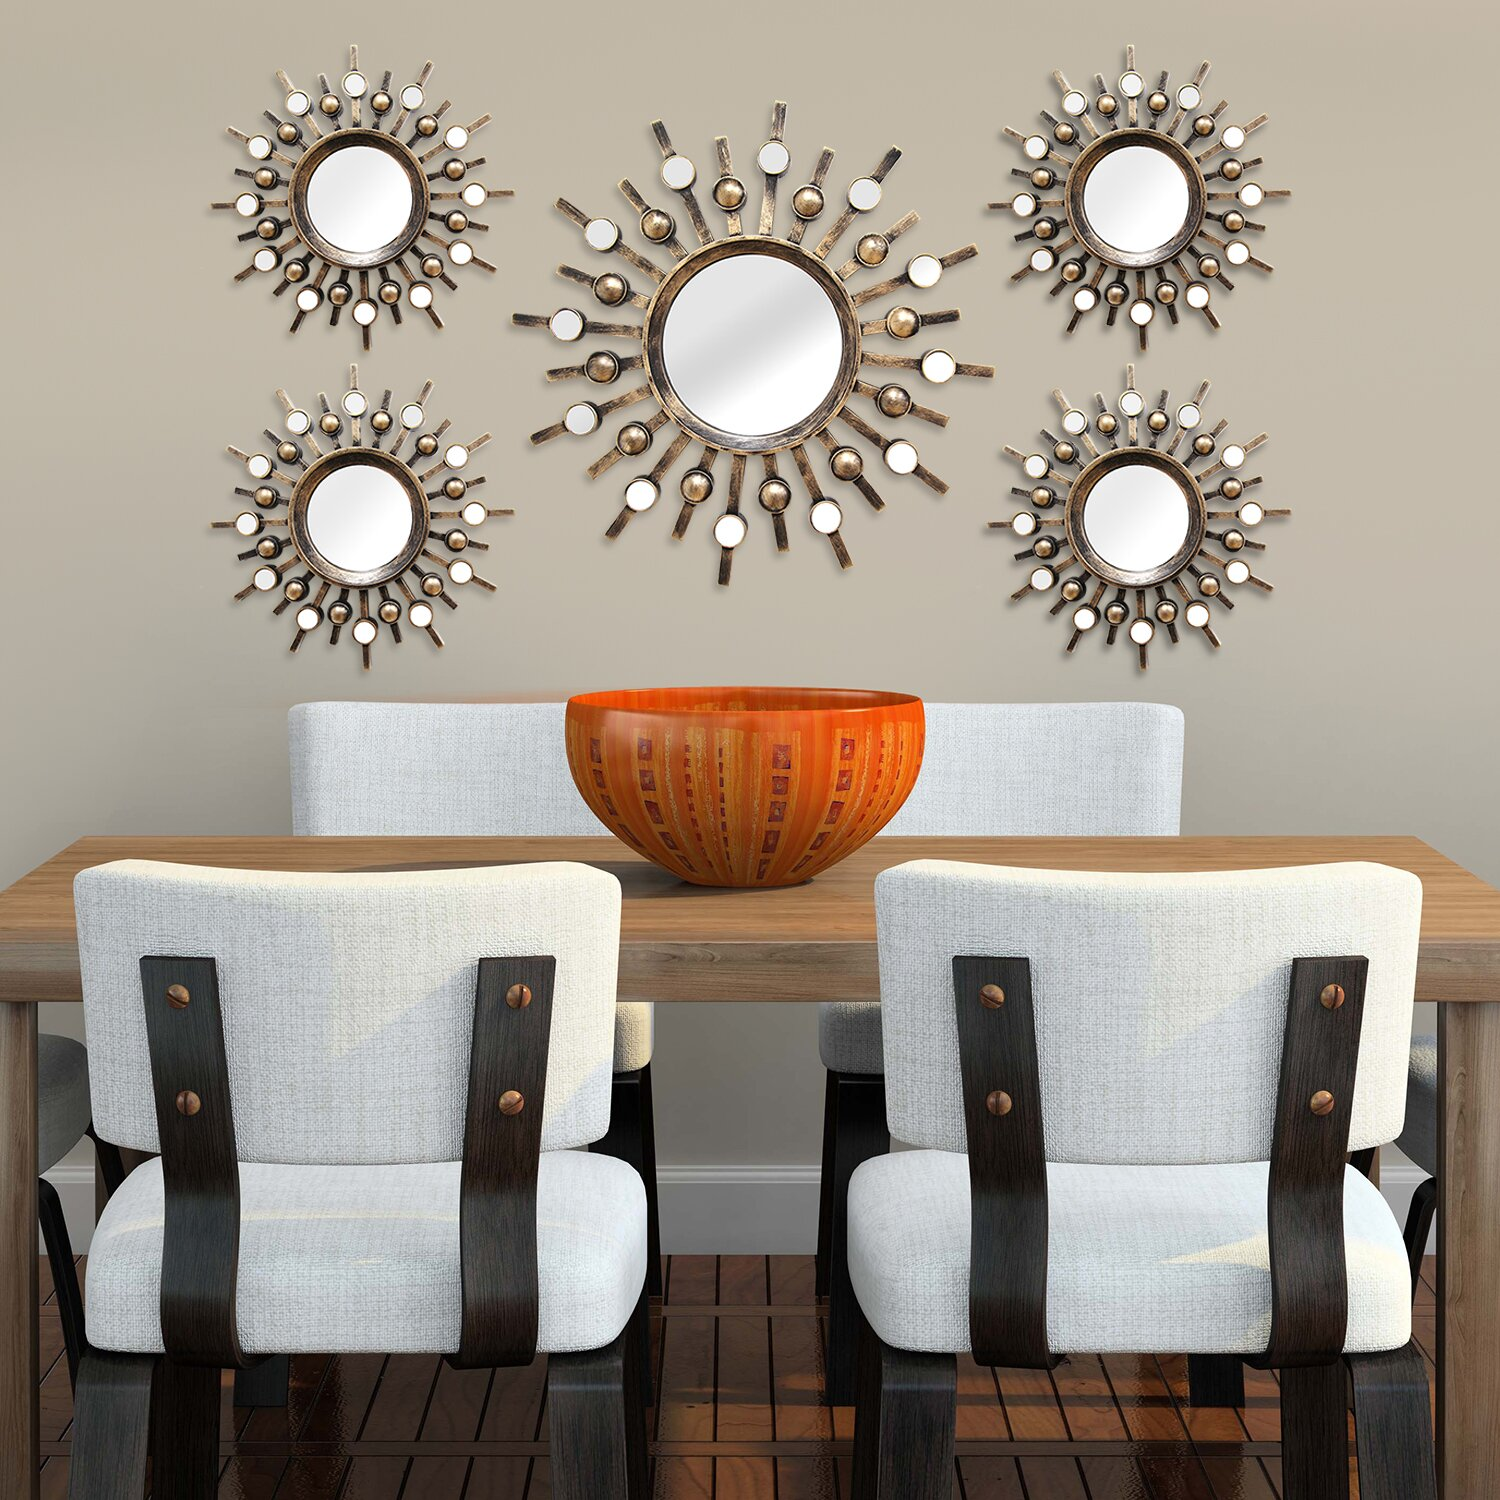 Stratton home decor burst 5 piece mirror set reviews wayfair - Home decorated set ...